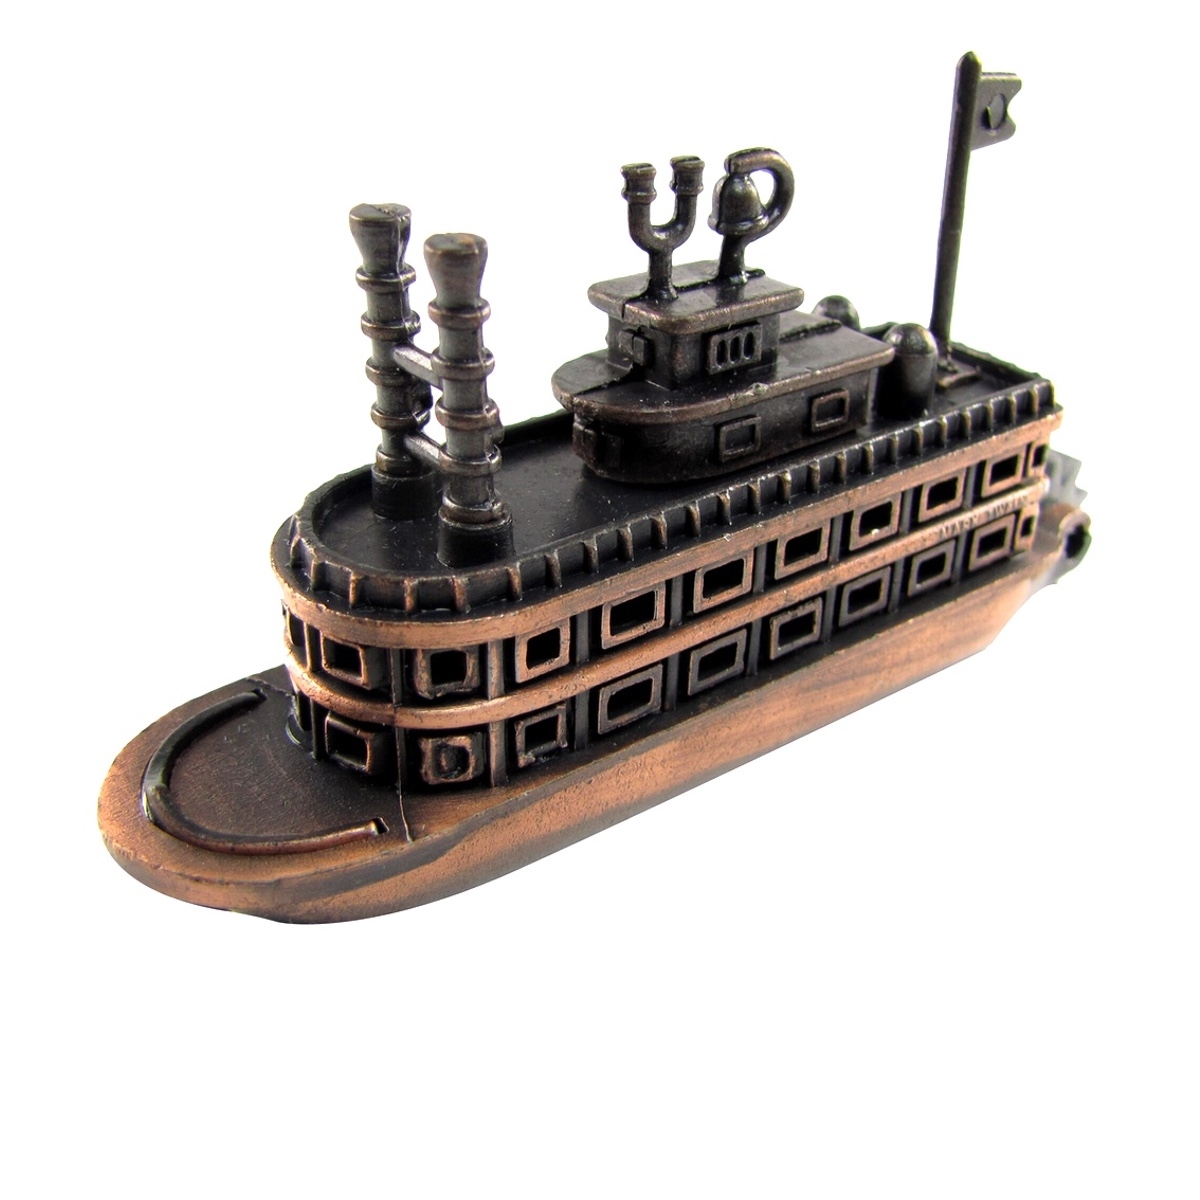 Bronze Metal Steamboat Paddle Boat Replica Die Cast Novelty Toy Pencil Sharpener